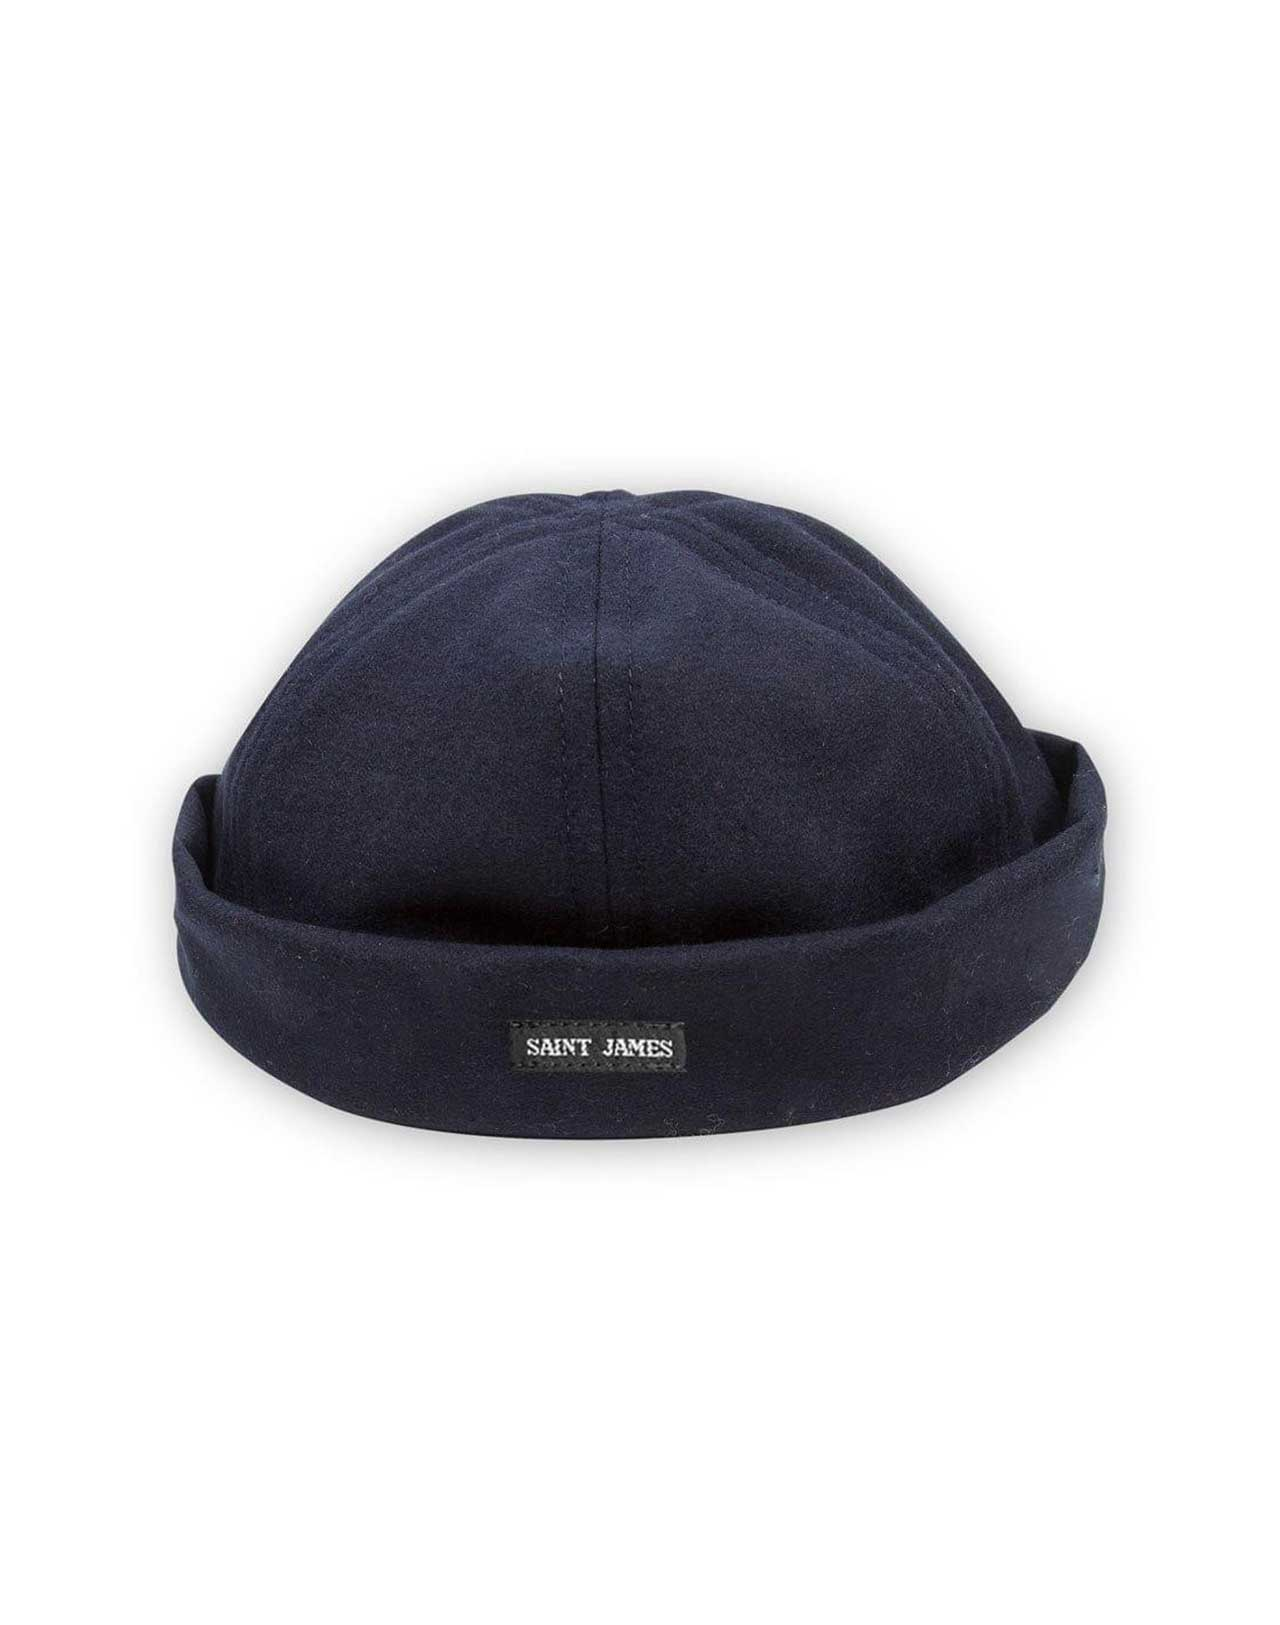 Bonnet Marin Miki Navy Saint James vu de face